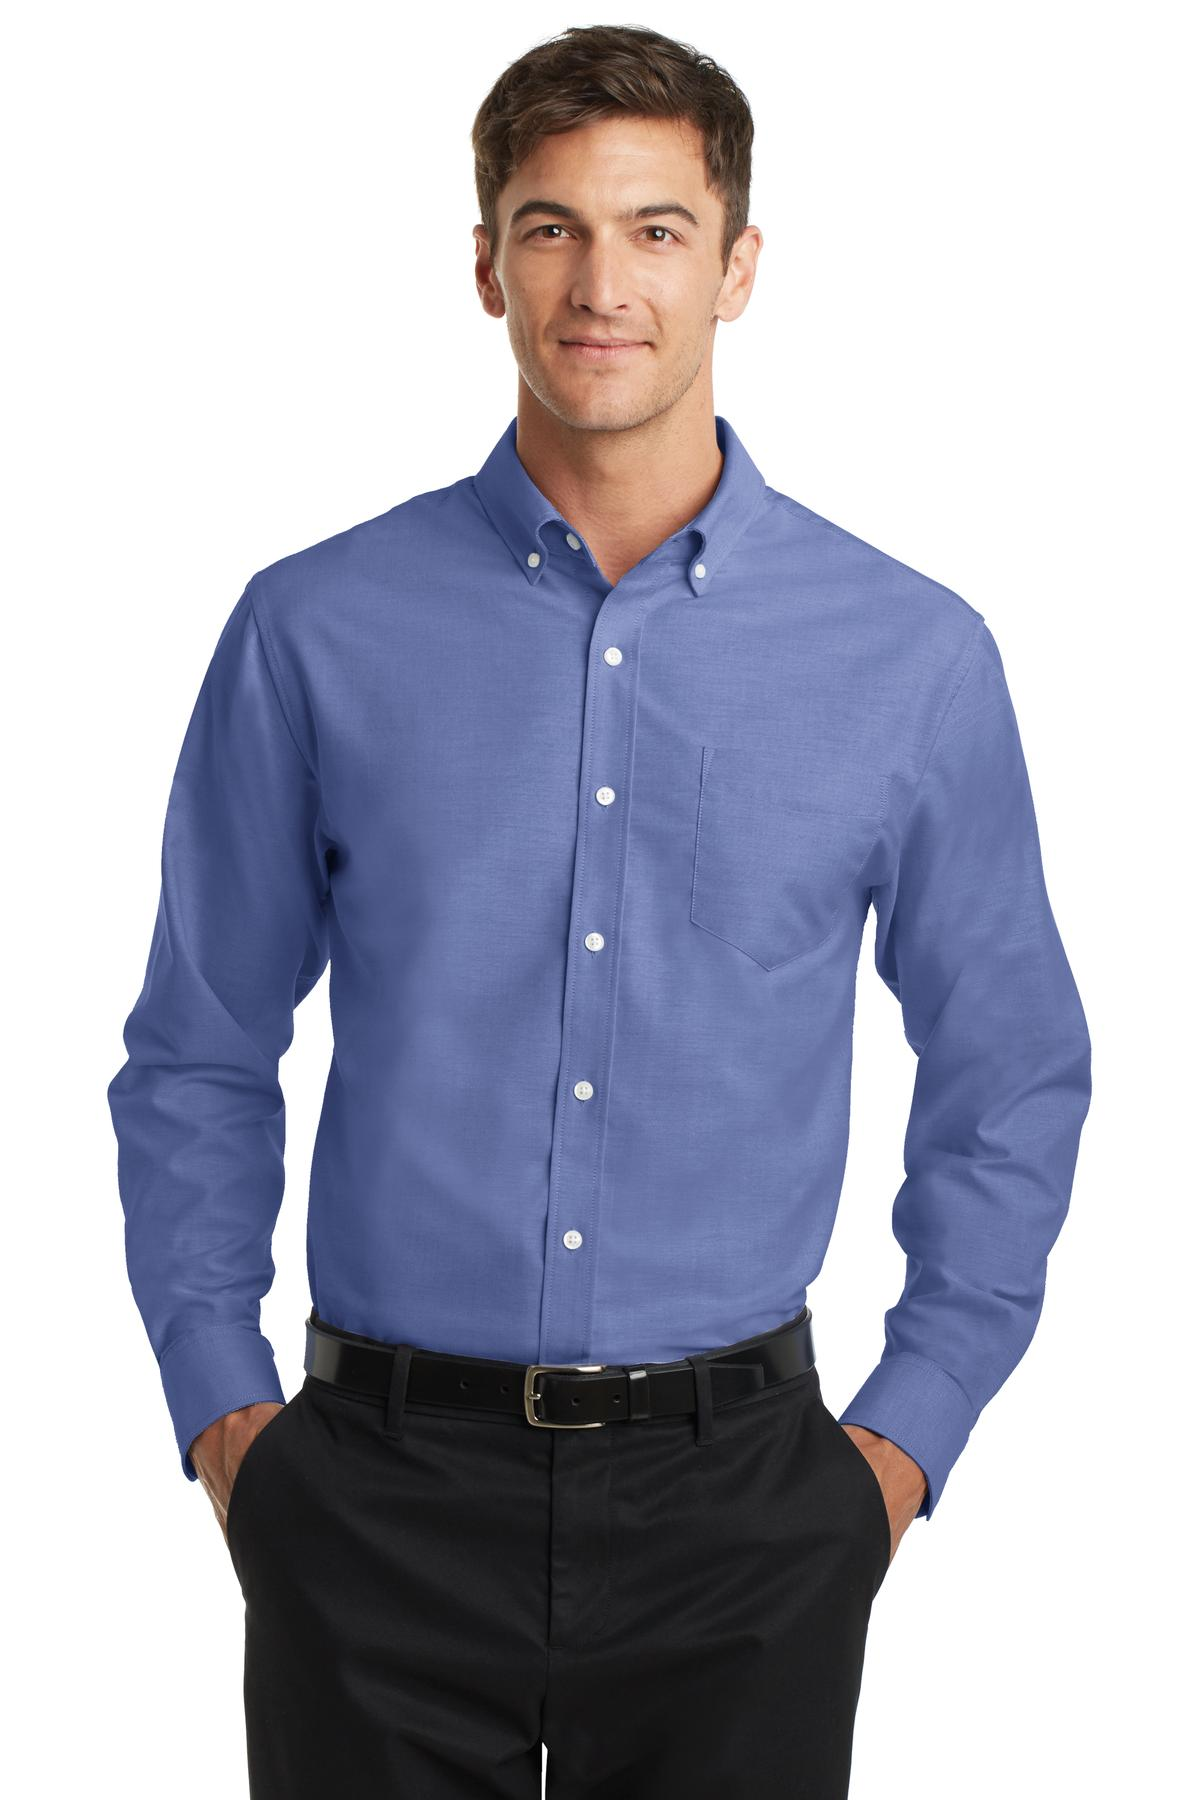 The Oxford shirt is an easy and comfortable solution when more effort than a tee and jeans are required. Here are some of our favorites. The Men's Oxford Shirts Every Guy Should Have in His Closet. The shirt that makes you look like a total boss! By Adam Mansuroglu. Best Mens T-Shirts That Are Another Wardrobe Staple.